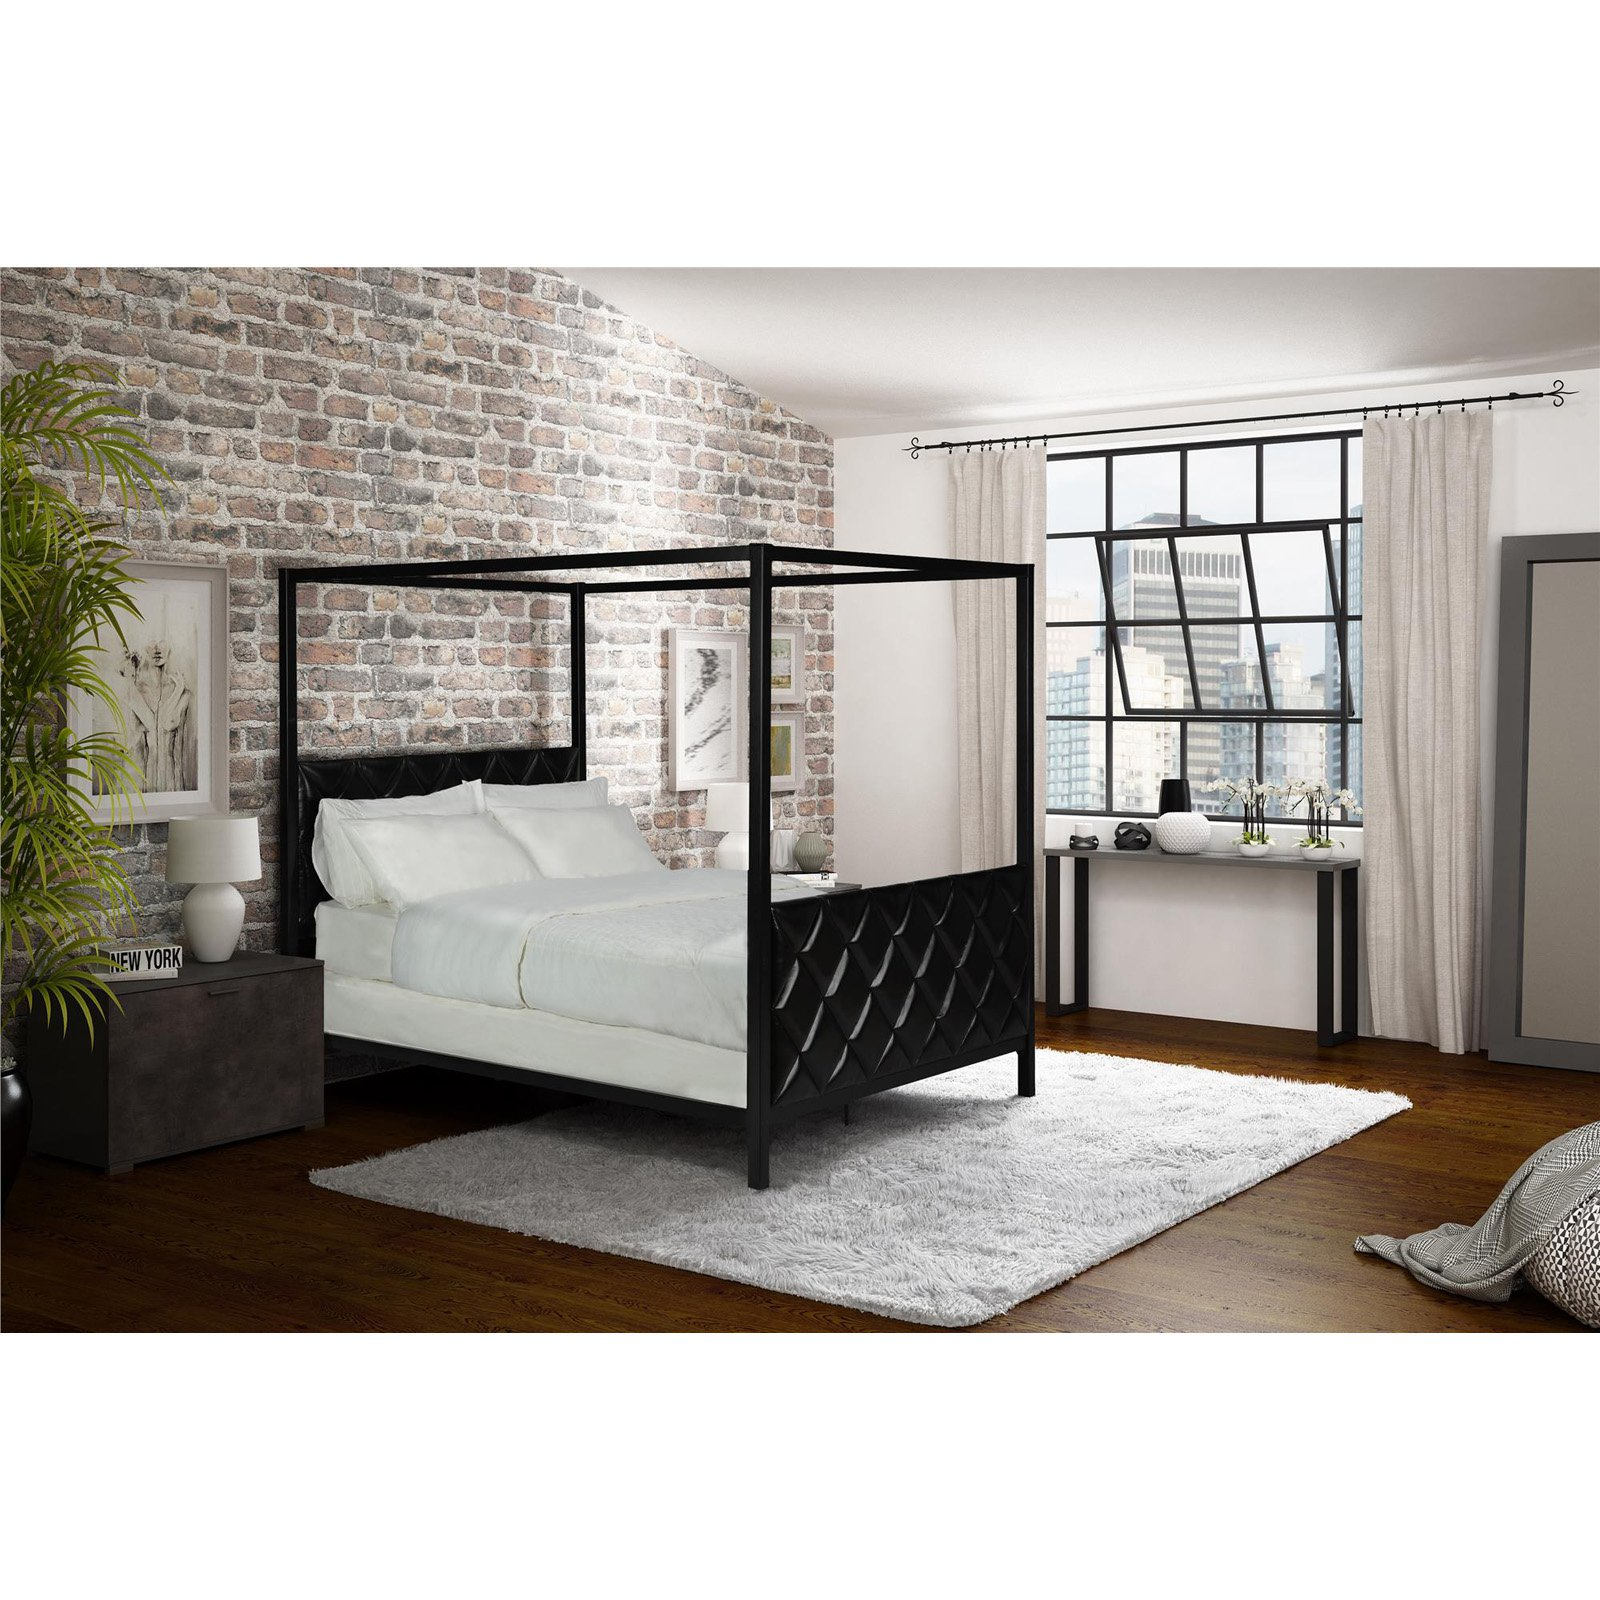 Alford Premium Modern Metal and Upholstered Canopy Bed, Queen by DHP